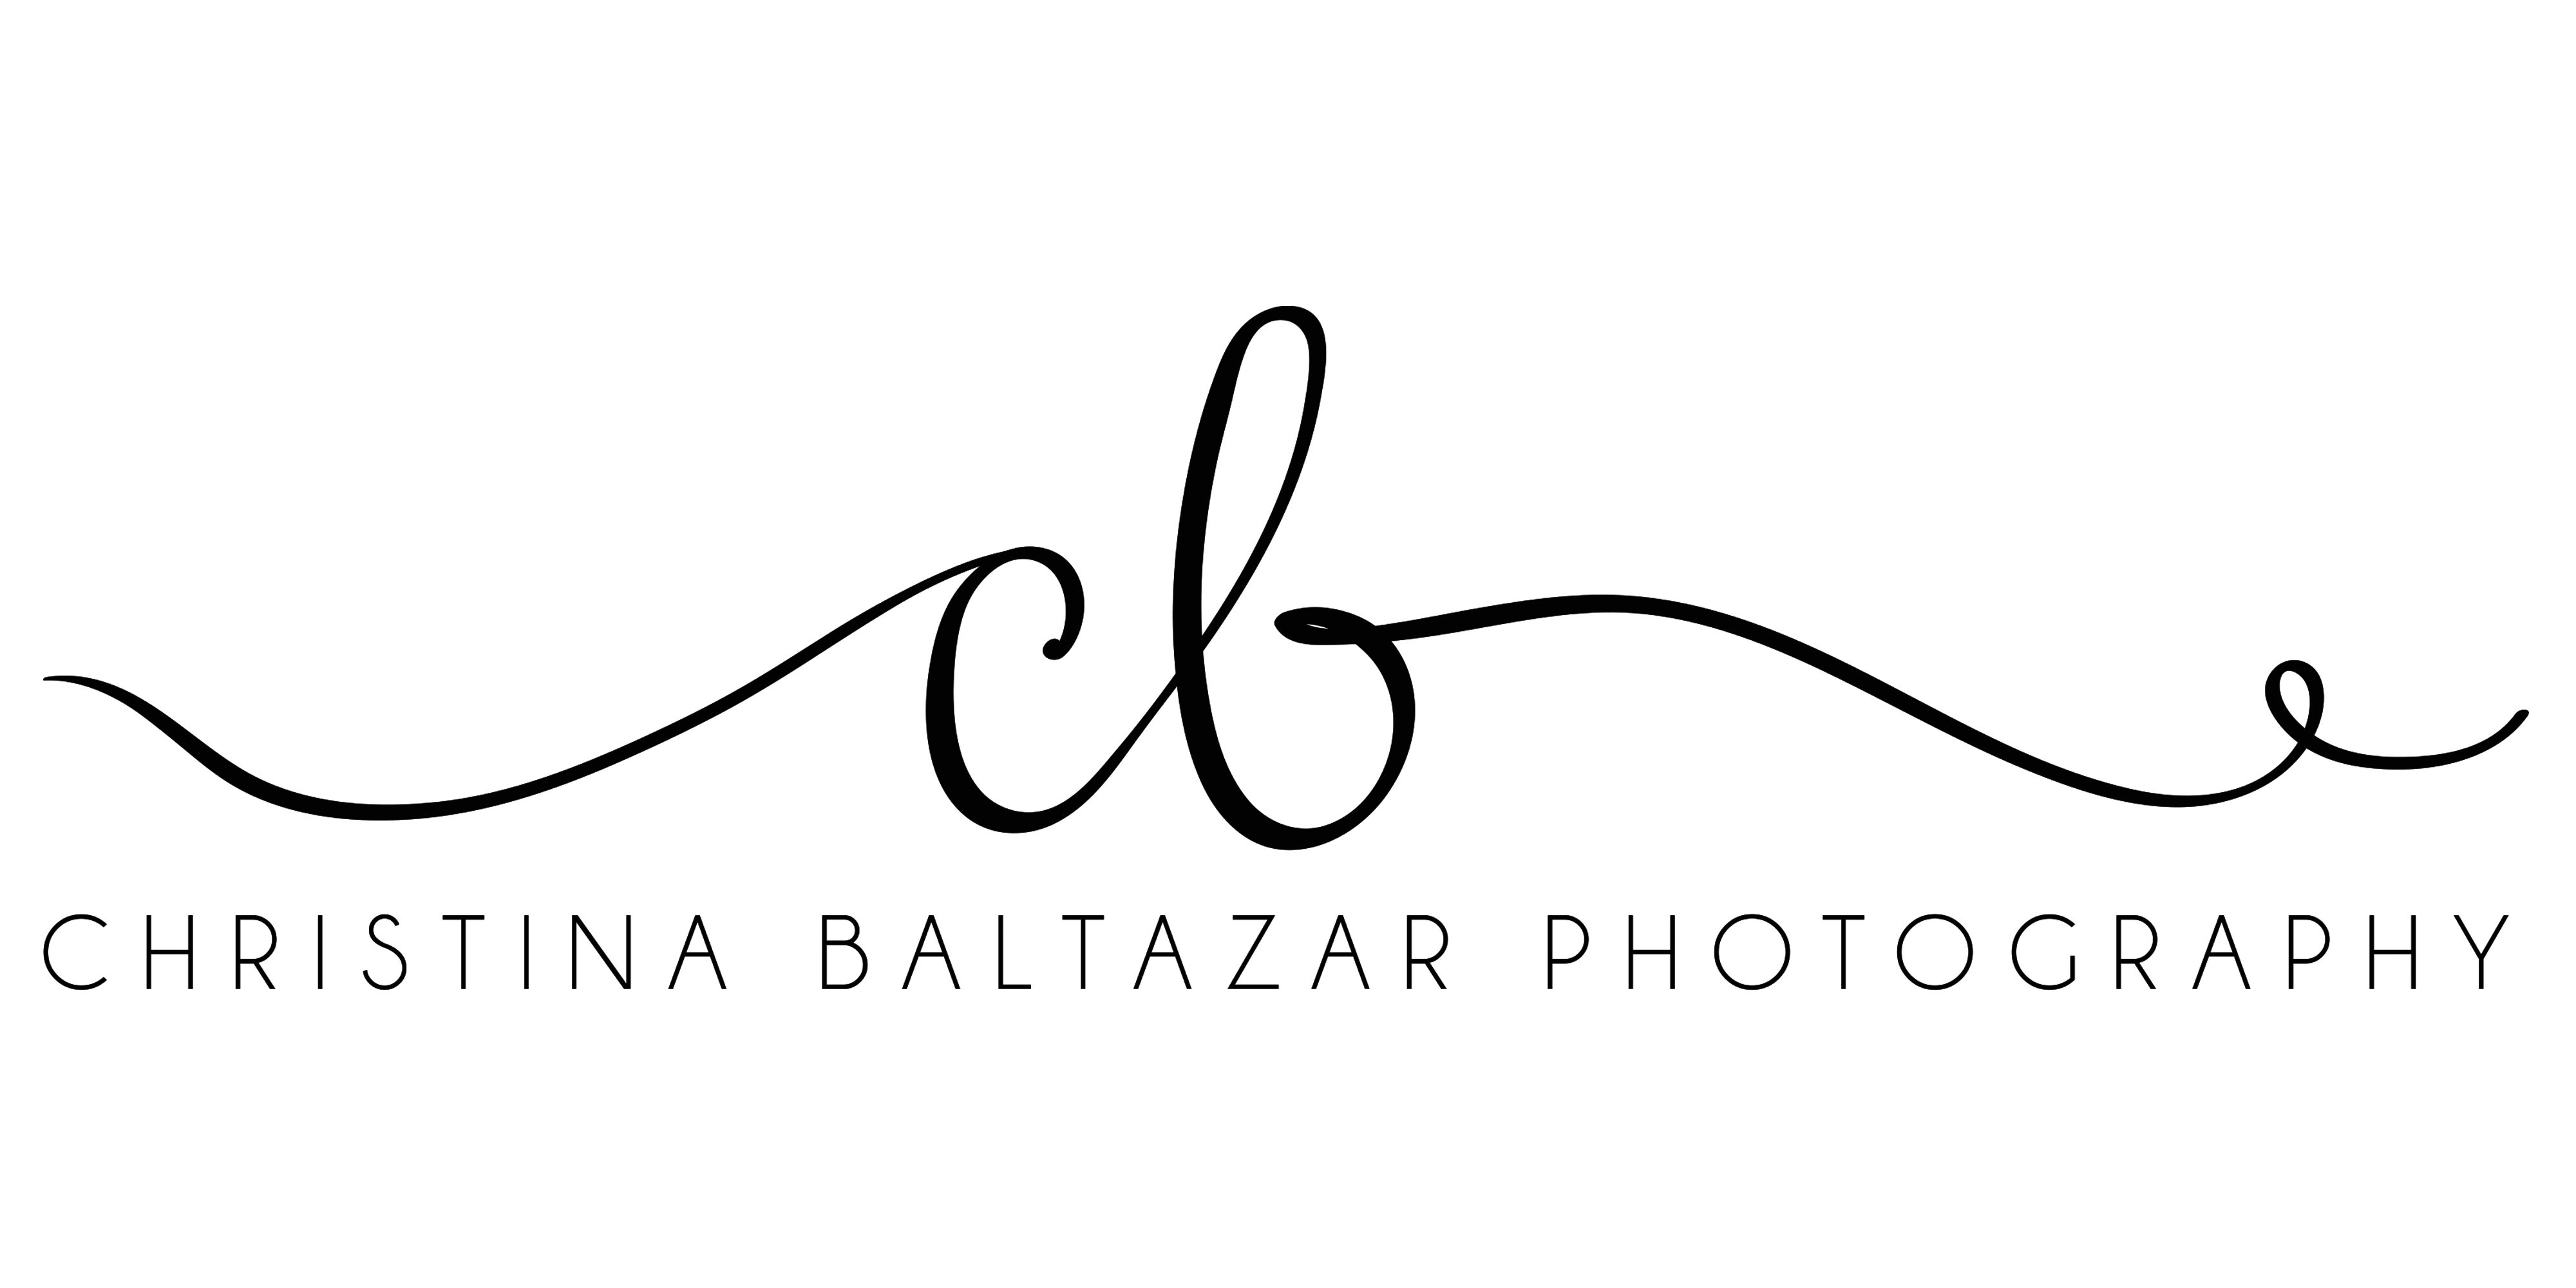 Christina Baltazar Photography